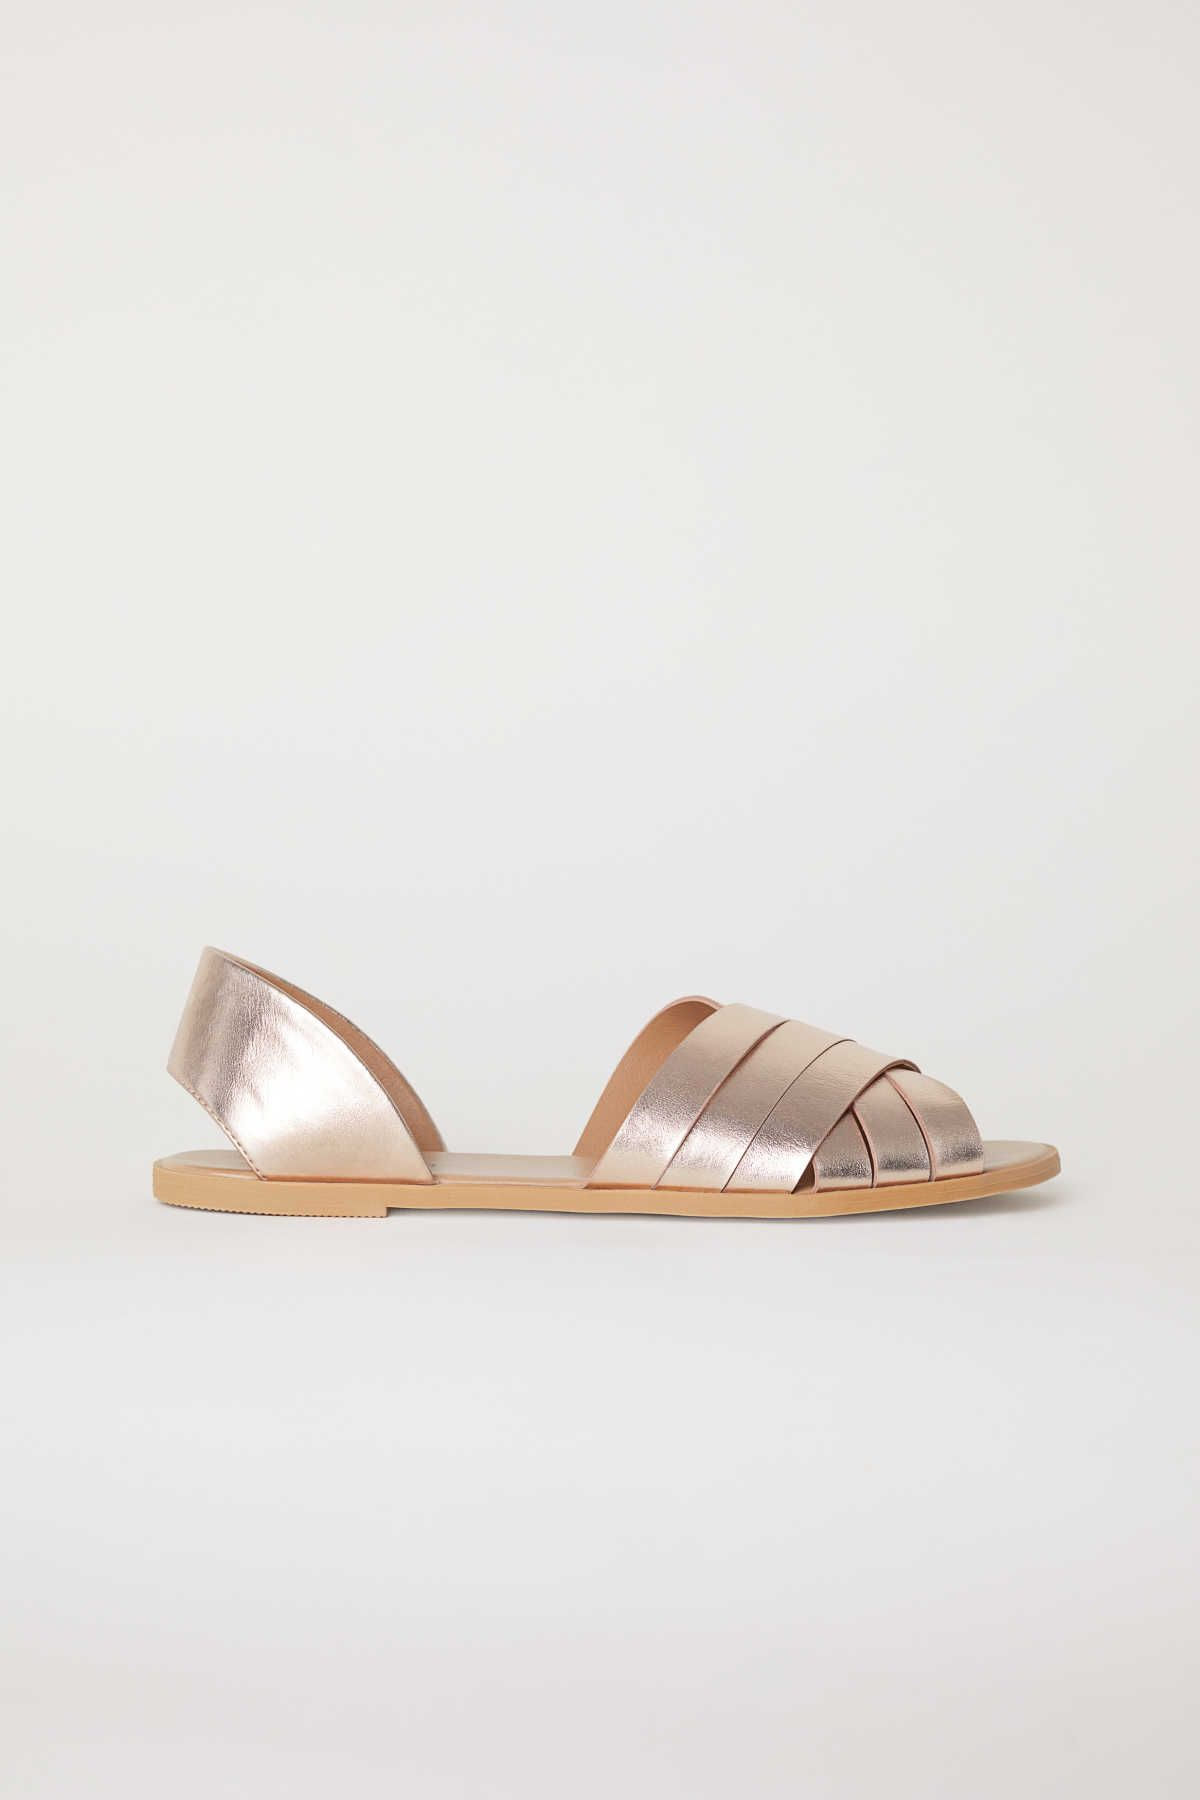 f1be17033 Rose gold-colored. Sandals with crossover front straps and open sides. Faux  leather insoles and rubber soles.